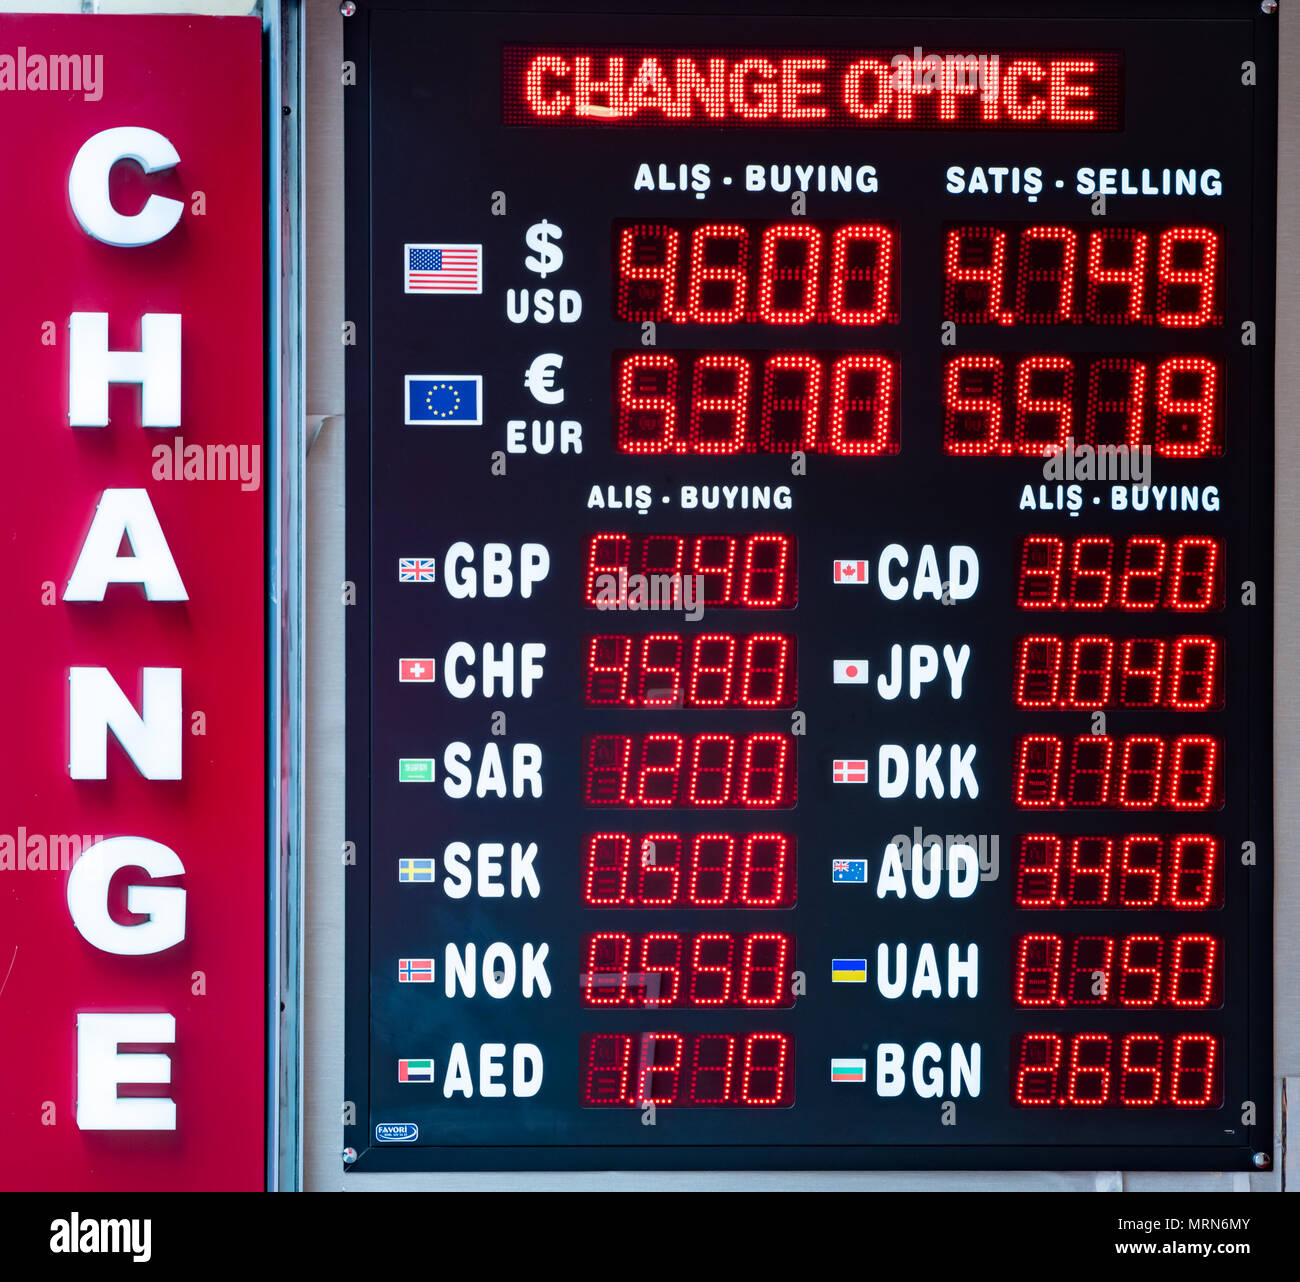 Turkish lira foreign exchange rates displays on a digital LED display board  in Istanbul, Turkey, Stock Photo